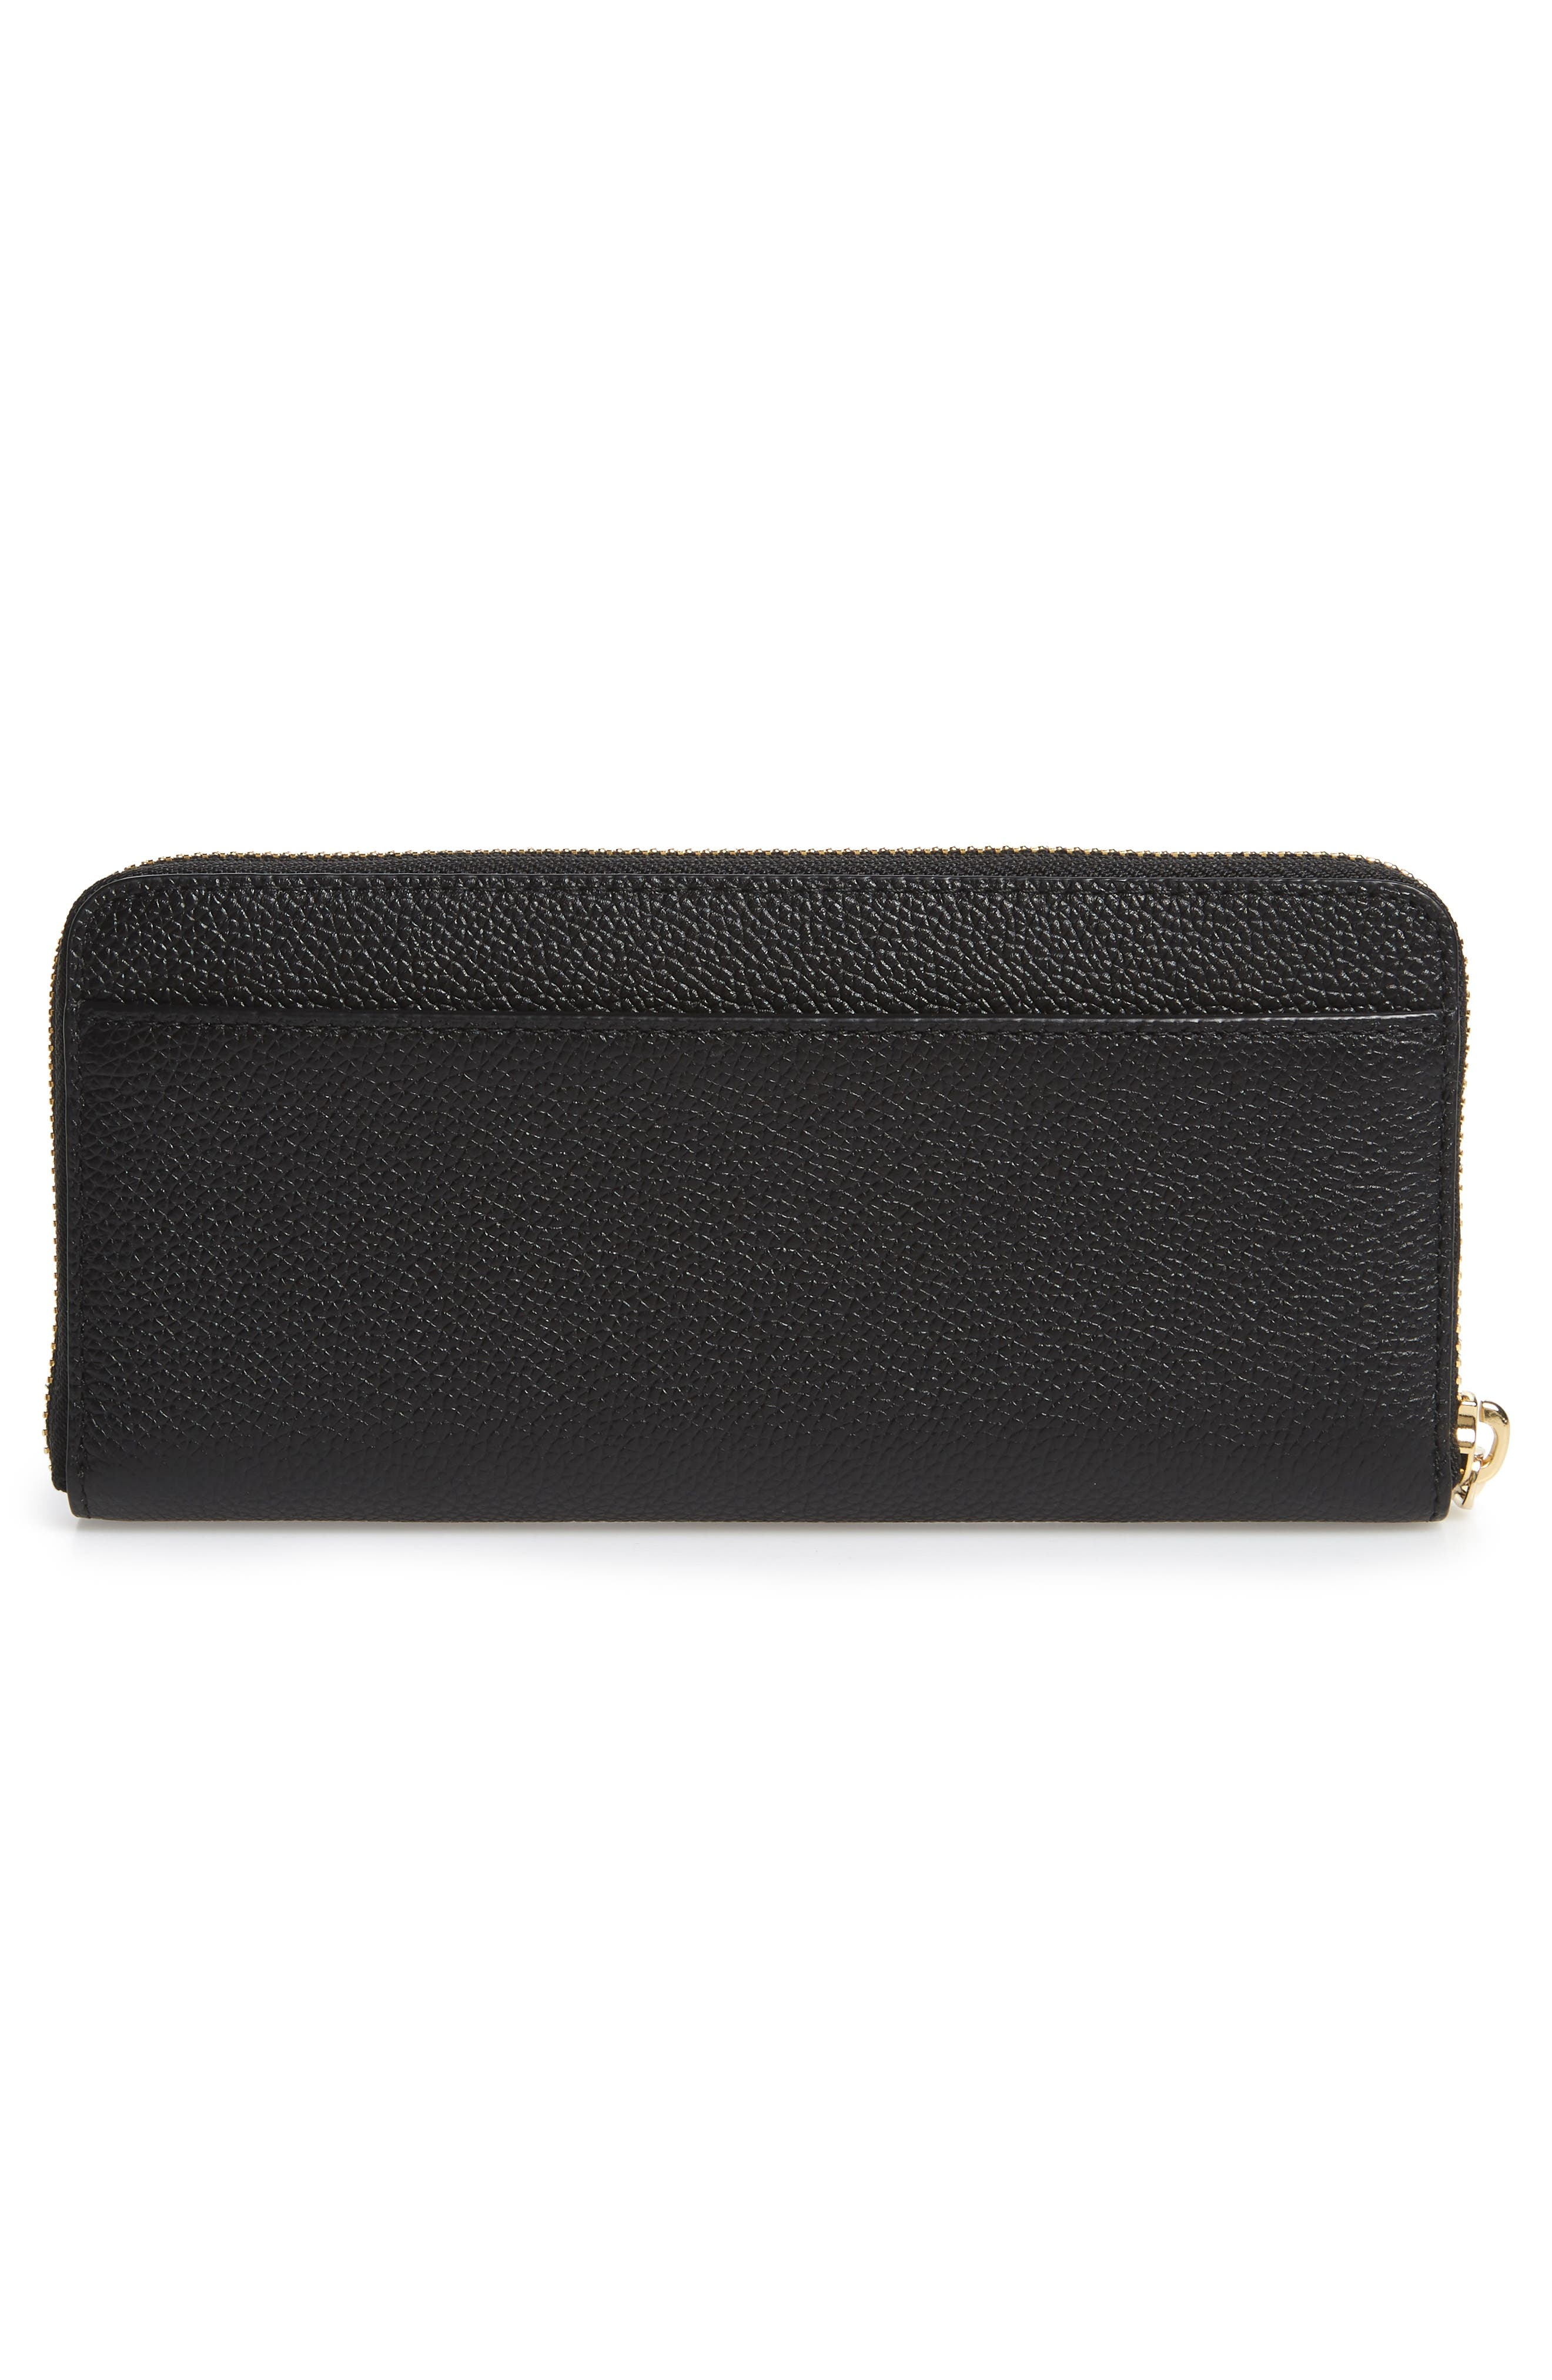 margaux leather continental wallet,                             Alternate thumbnail 3, color,                             BLACK